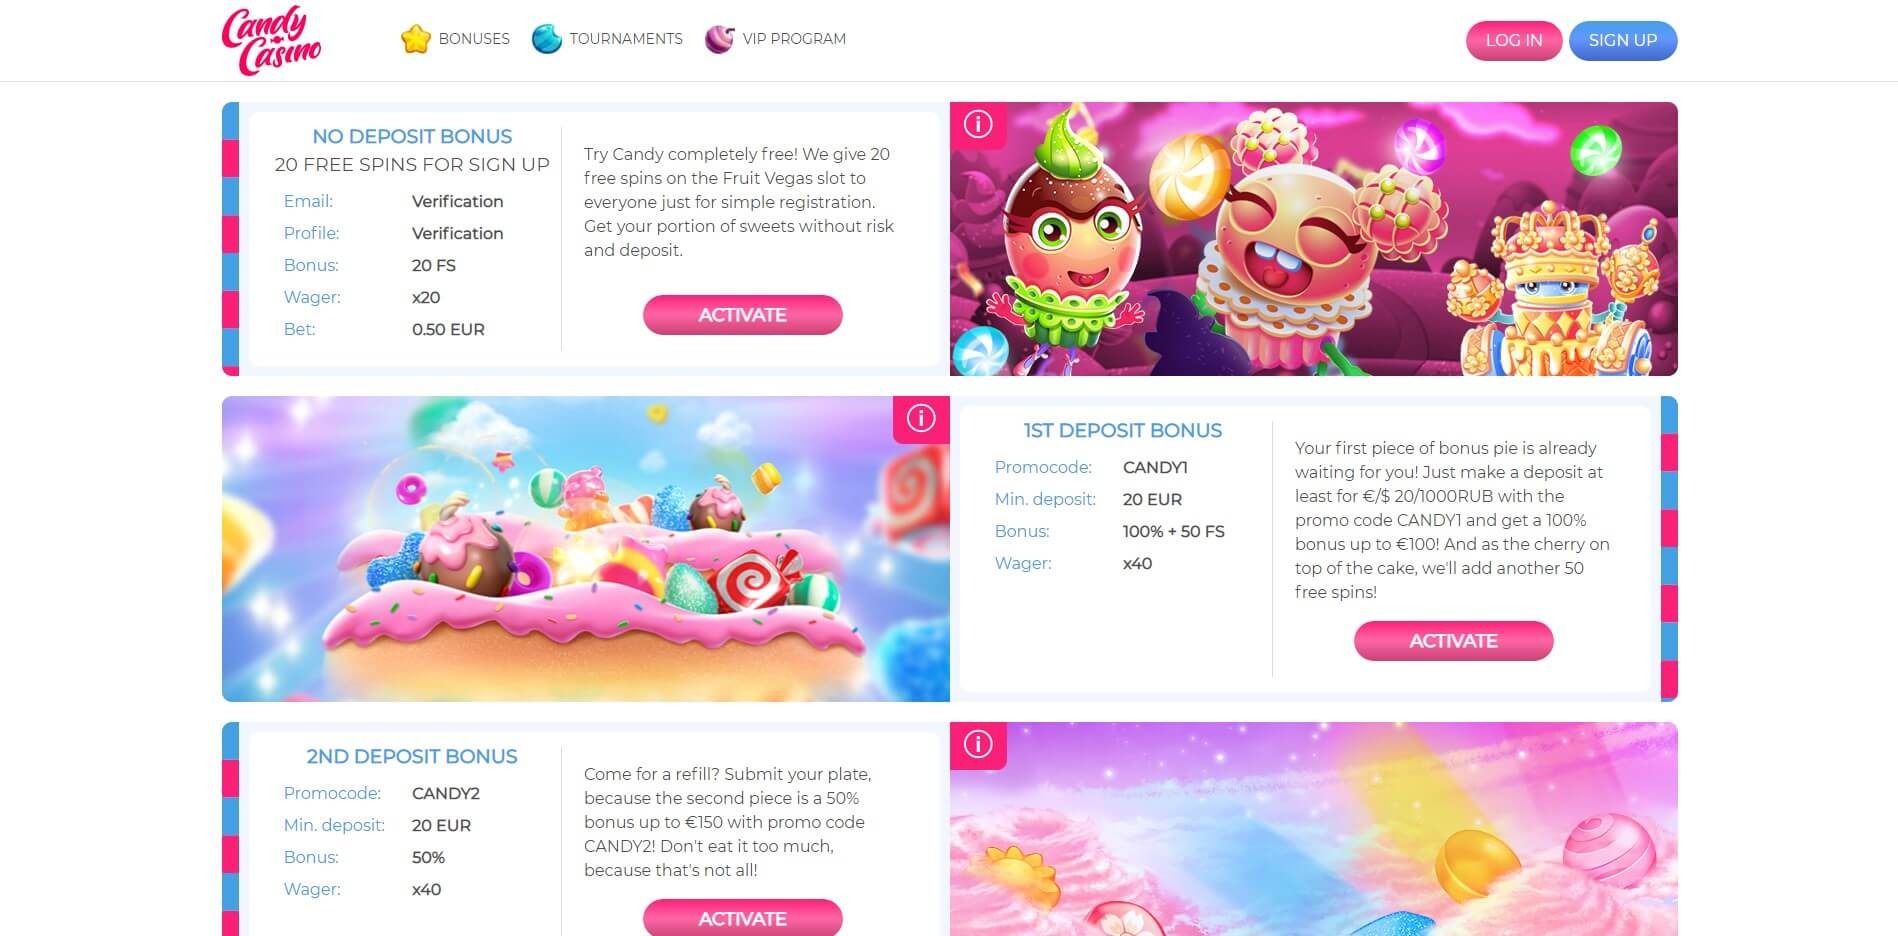 Promotions at Candy Casino